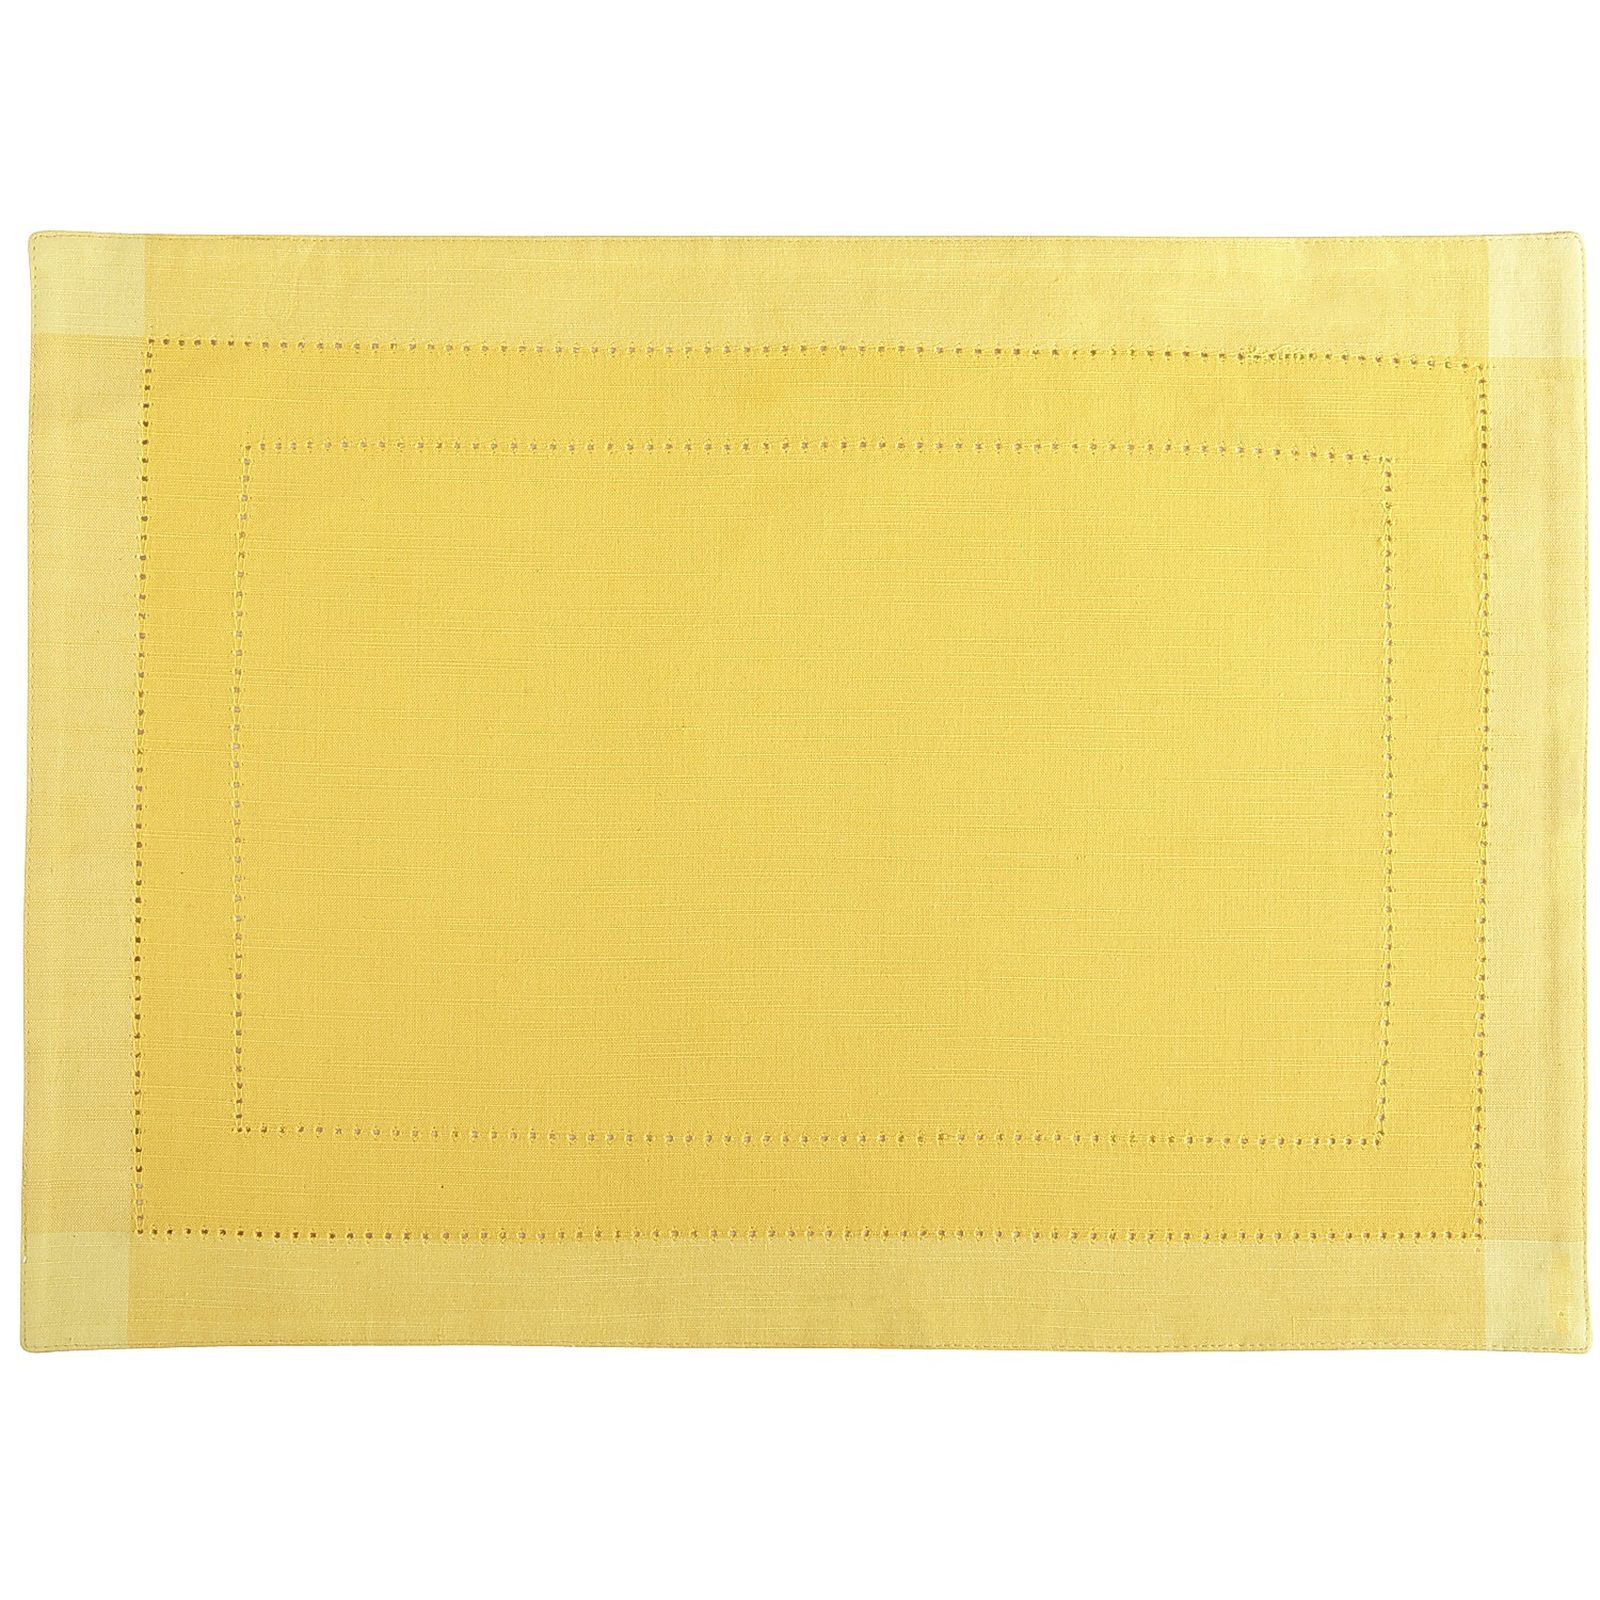 Hemstitch Yellow Placemat Pier 1 Imports 2 Yellow Placemats Placemats Turquoise Kitchen Decor